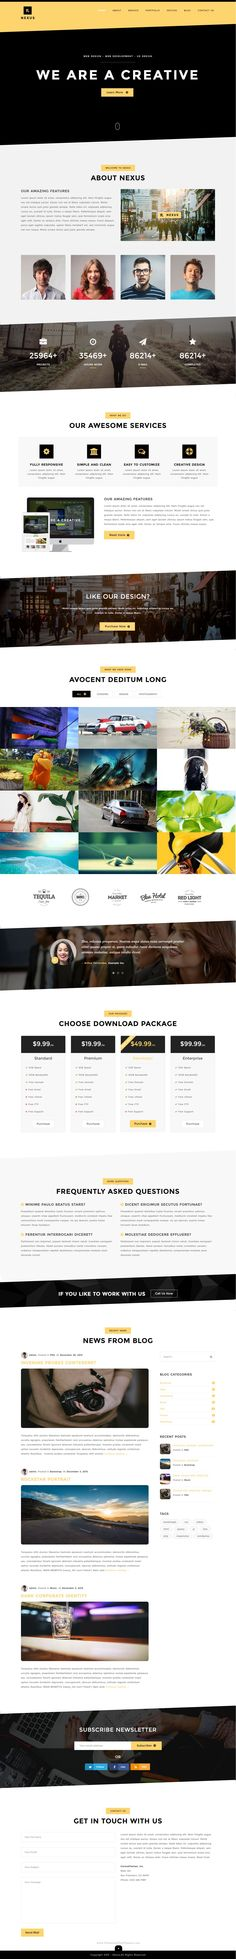 Nexus is a Fully Responsive, Modern and Multipurpose WordPress Template based on Bootstrap 3 framework created for Creative Professionals, #Agencies, Content Creators and Photographers etc. #webdesign